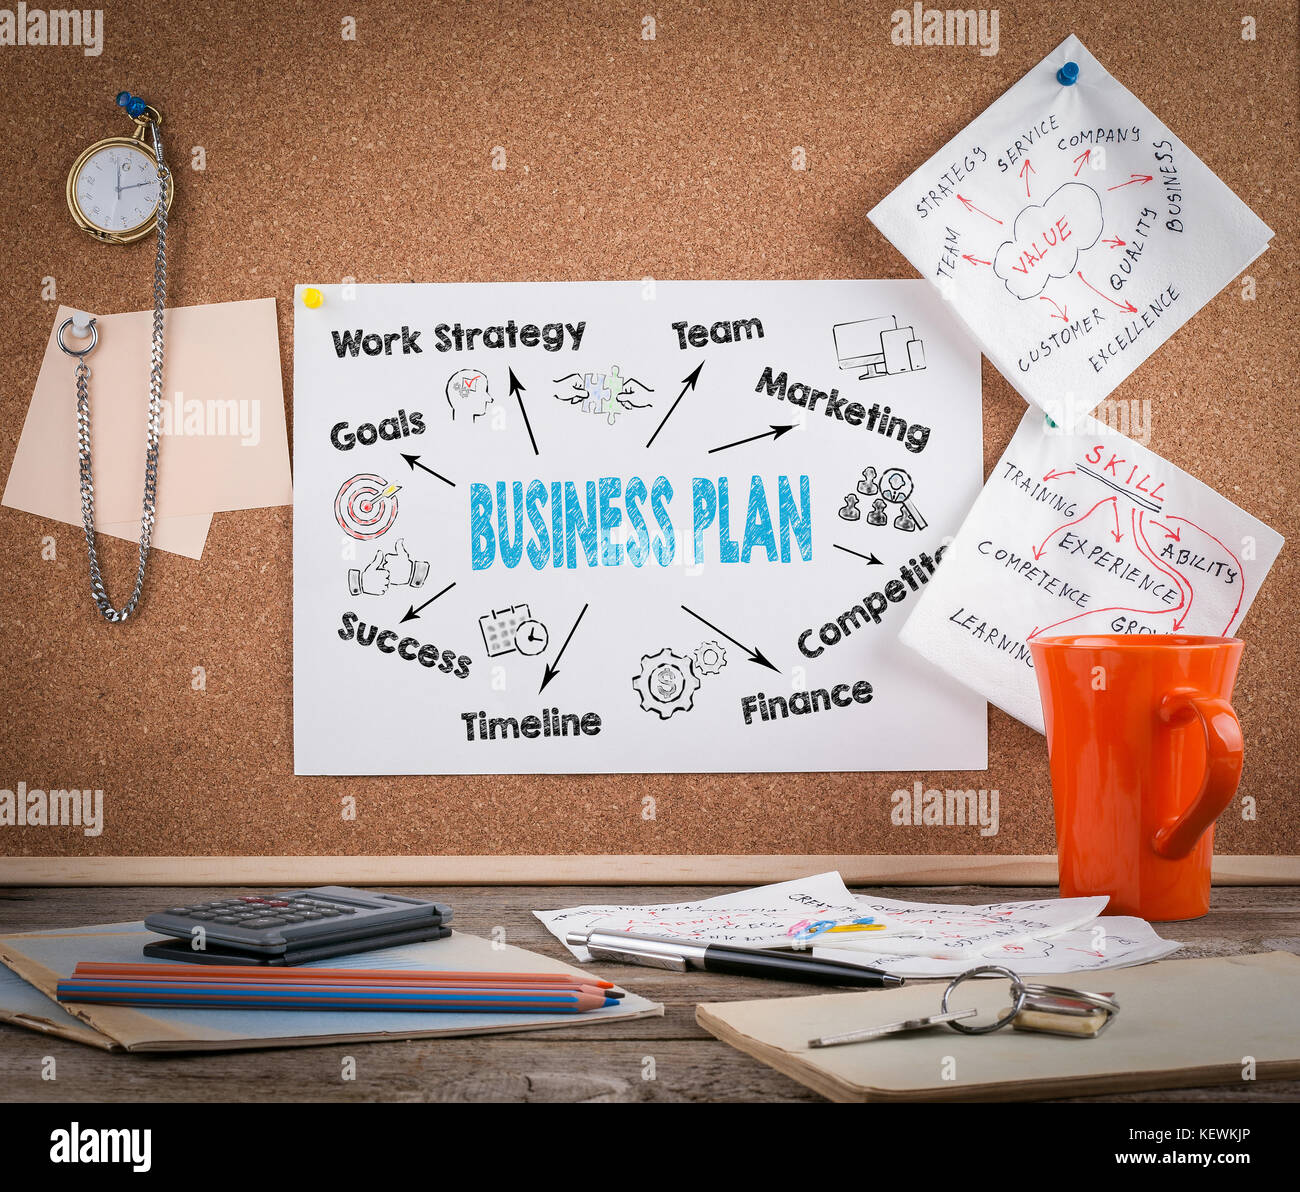 business plan concept on cork board. Wooden office desk with a big mess - Stock Image